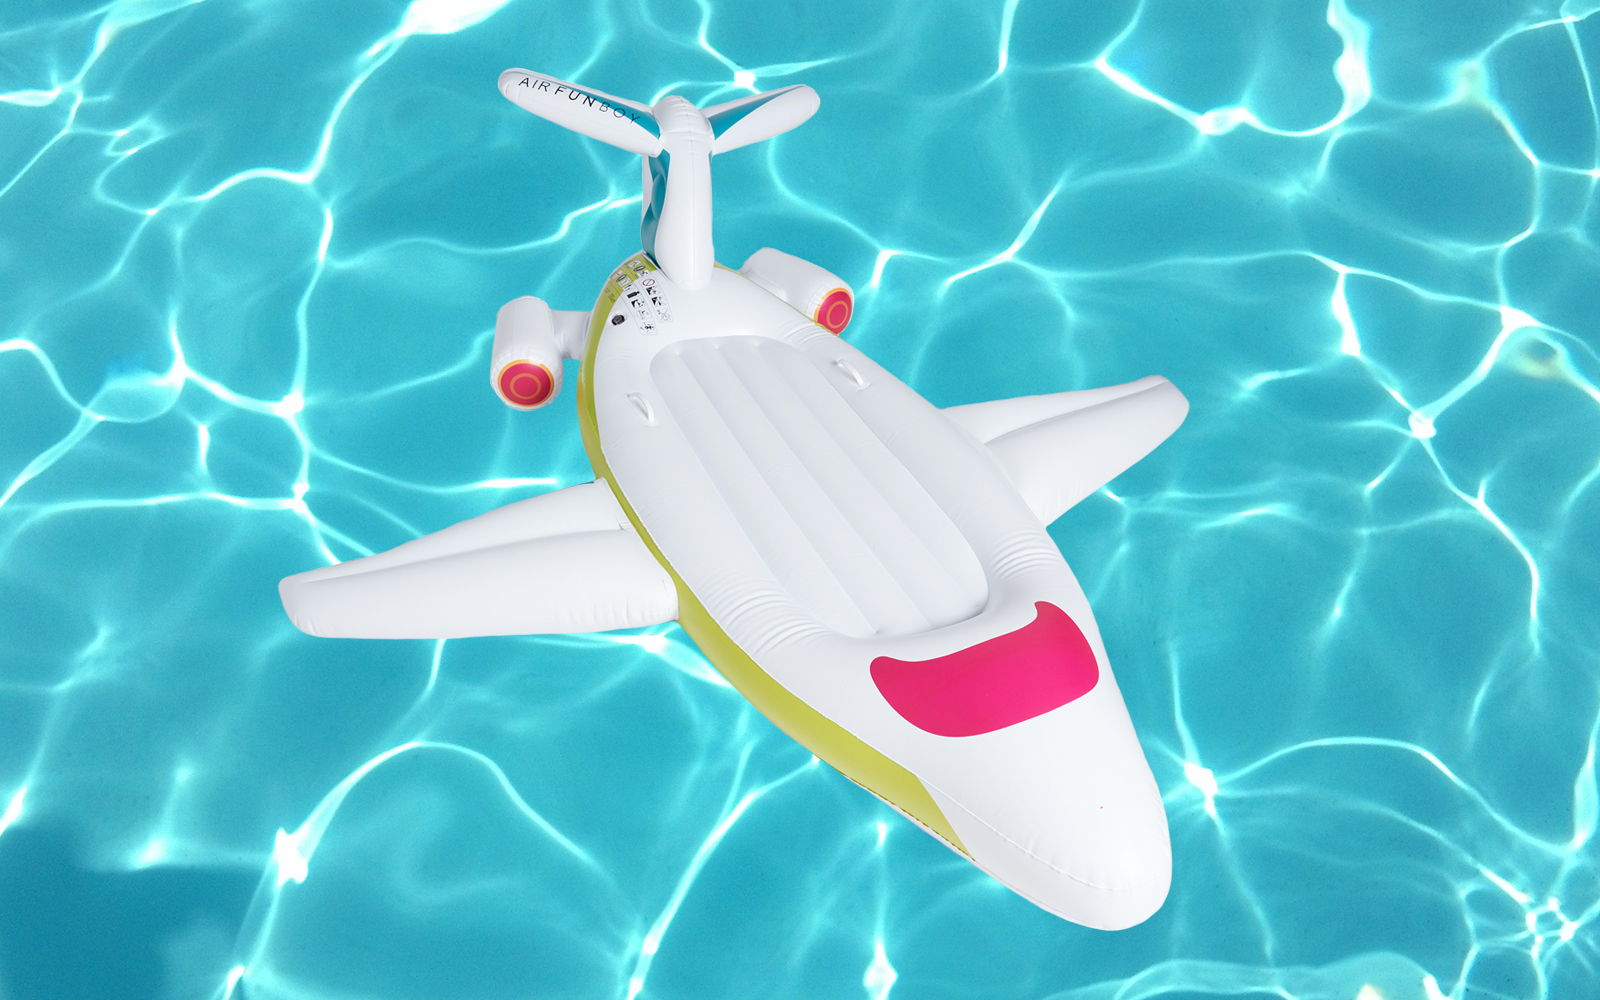 You Can Get Your Own Private Jet (Pool Float) for 50% Off Right Now